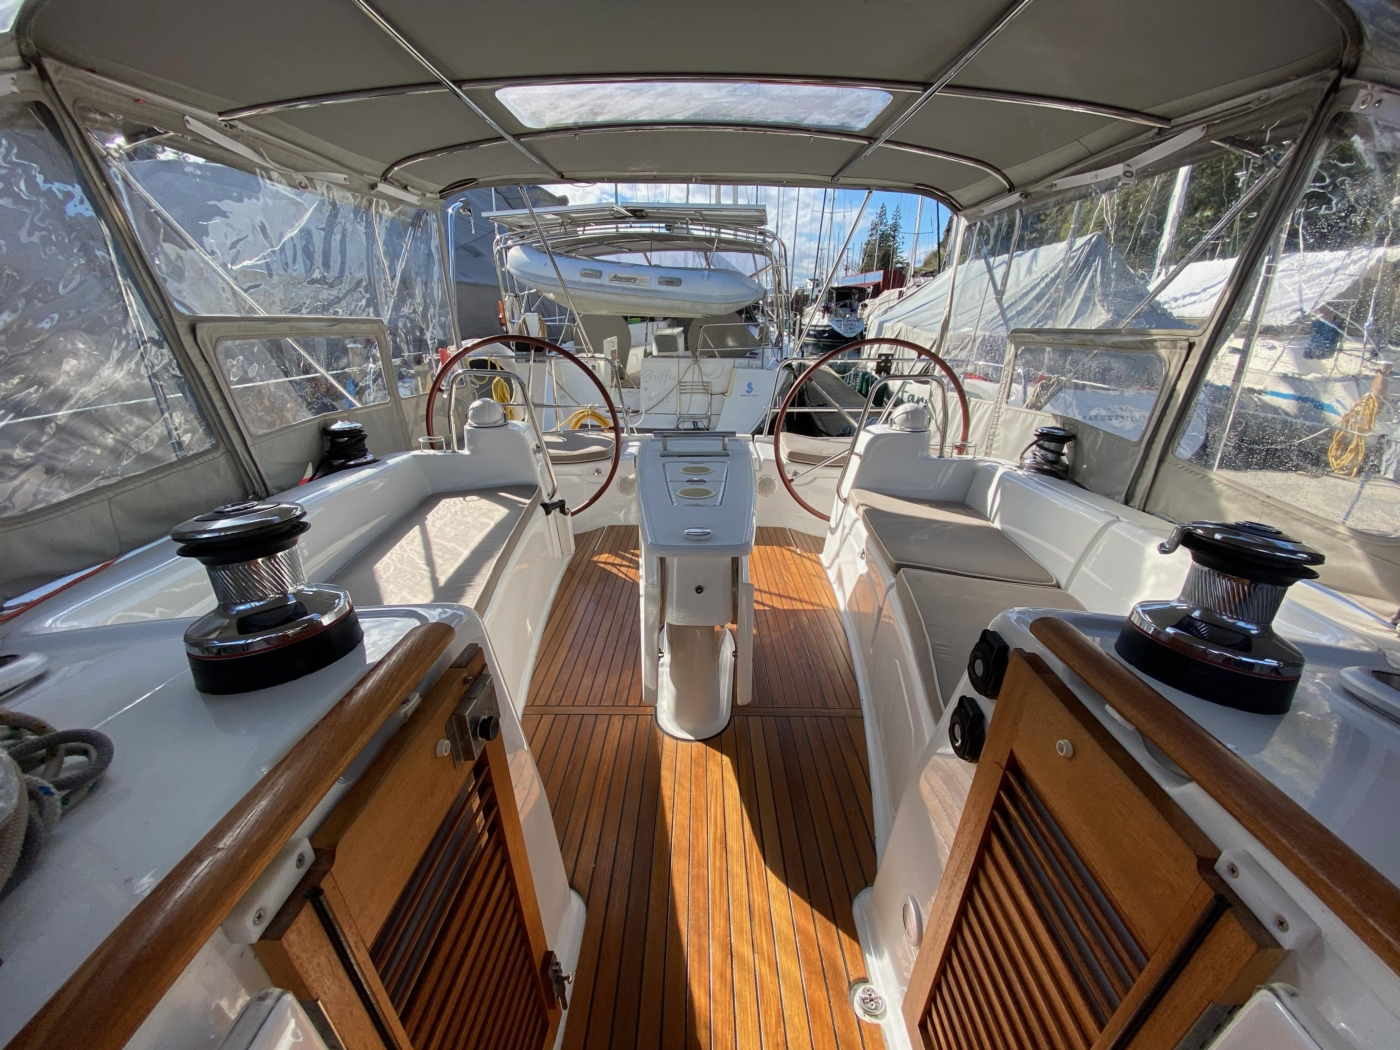 2010 Beneteau Oceanis 40, Cockpit Looking Aft